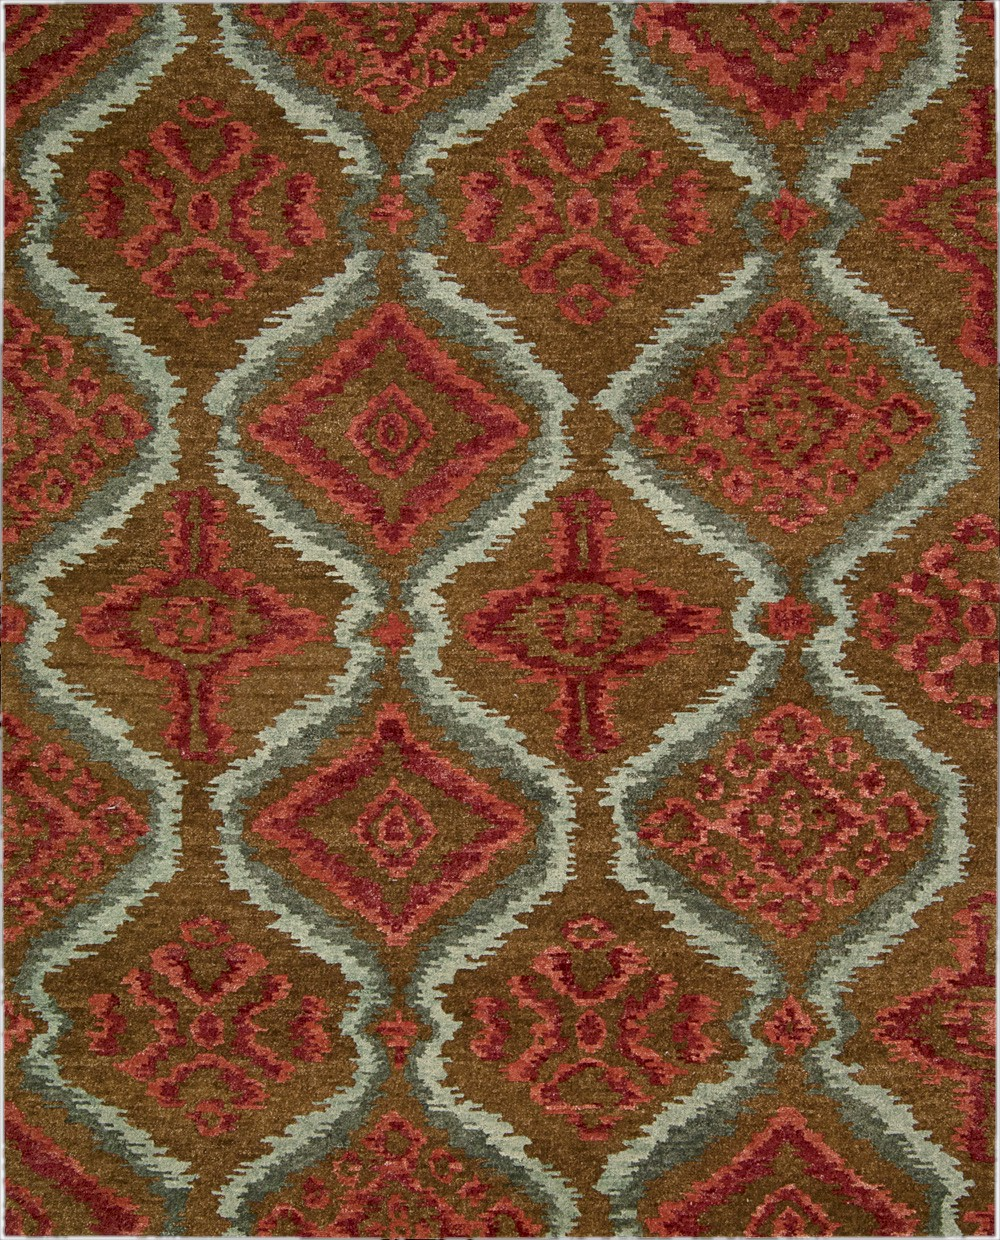 nourison tahoe modern mta06 brnrd brown red area rug